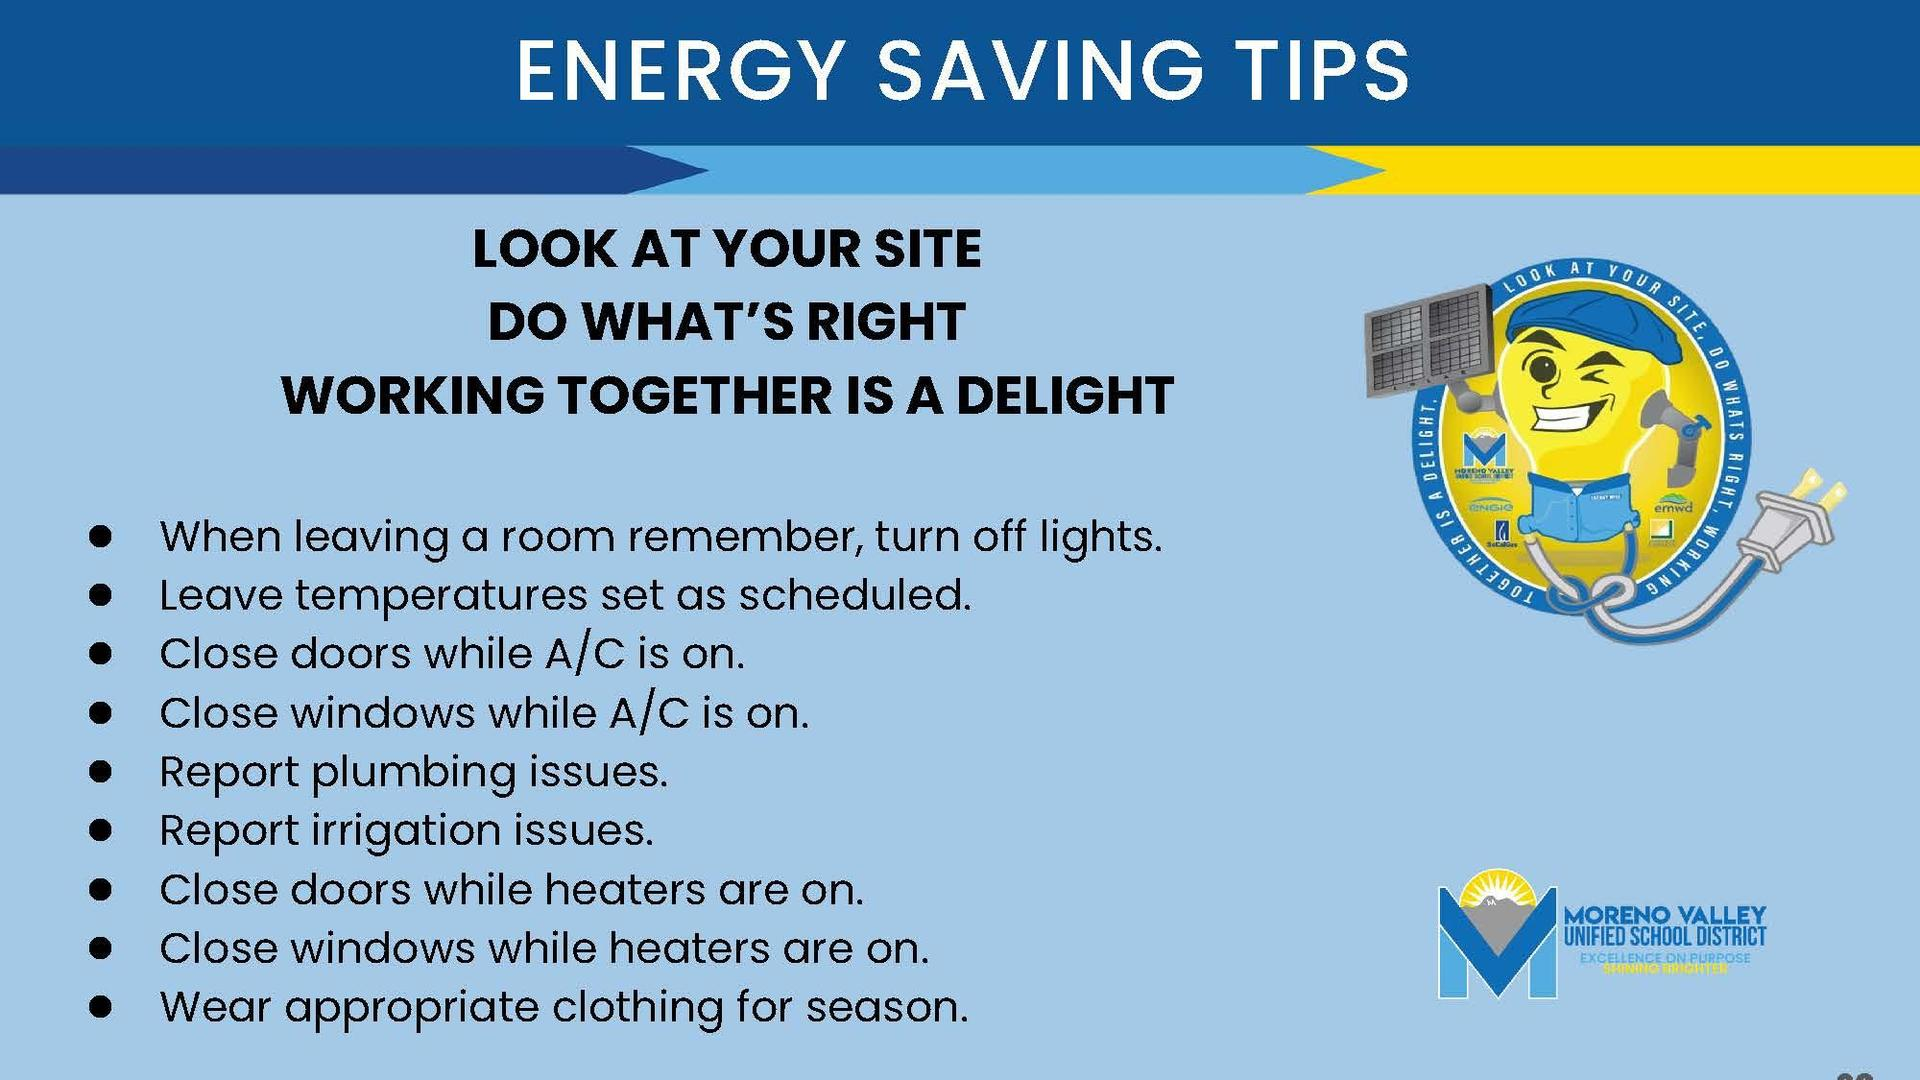 page showing energy saving tips